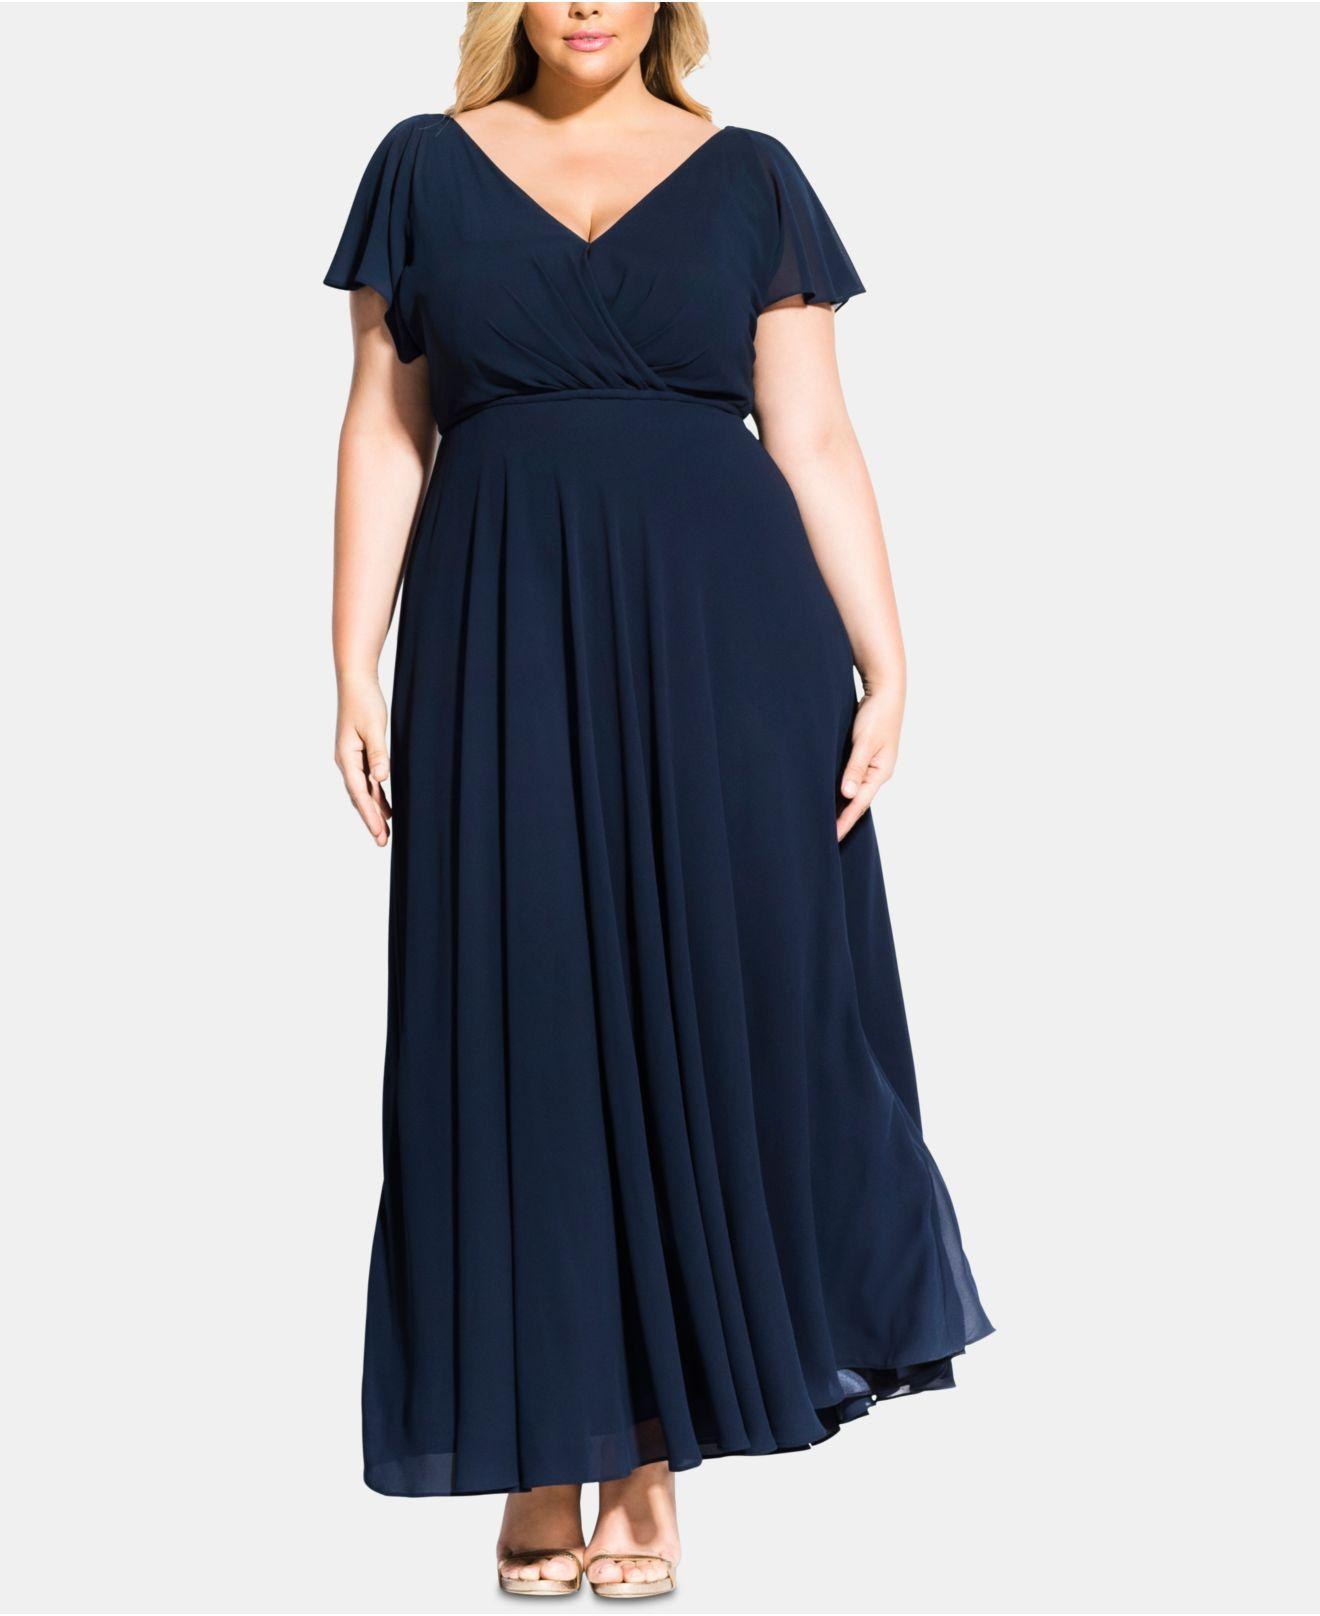 d9311acedb Lyst - City Chic Trendy Plus Size Sweet Wishes Maxi Dress in Blue